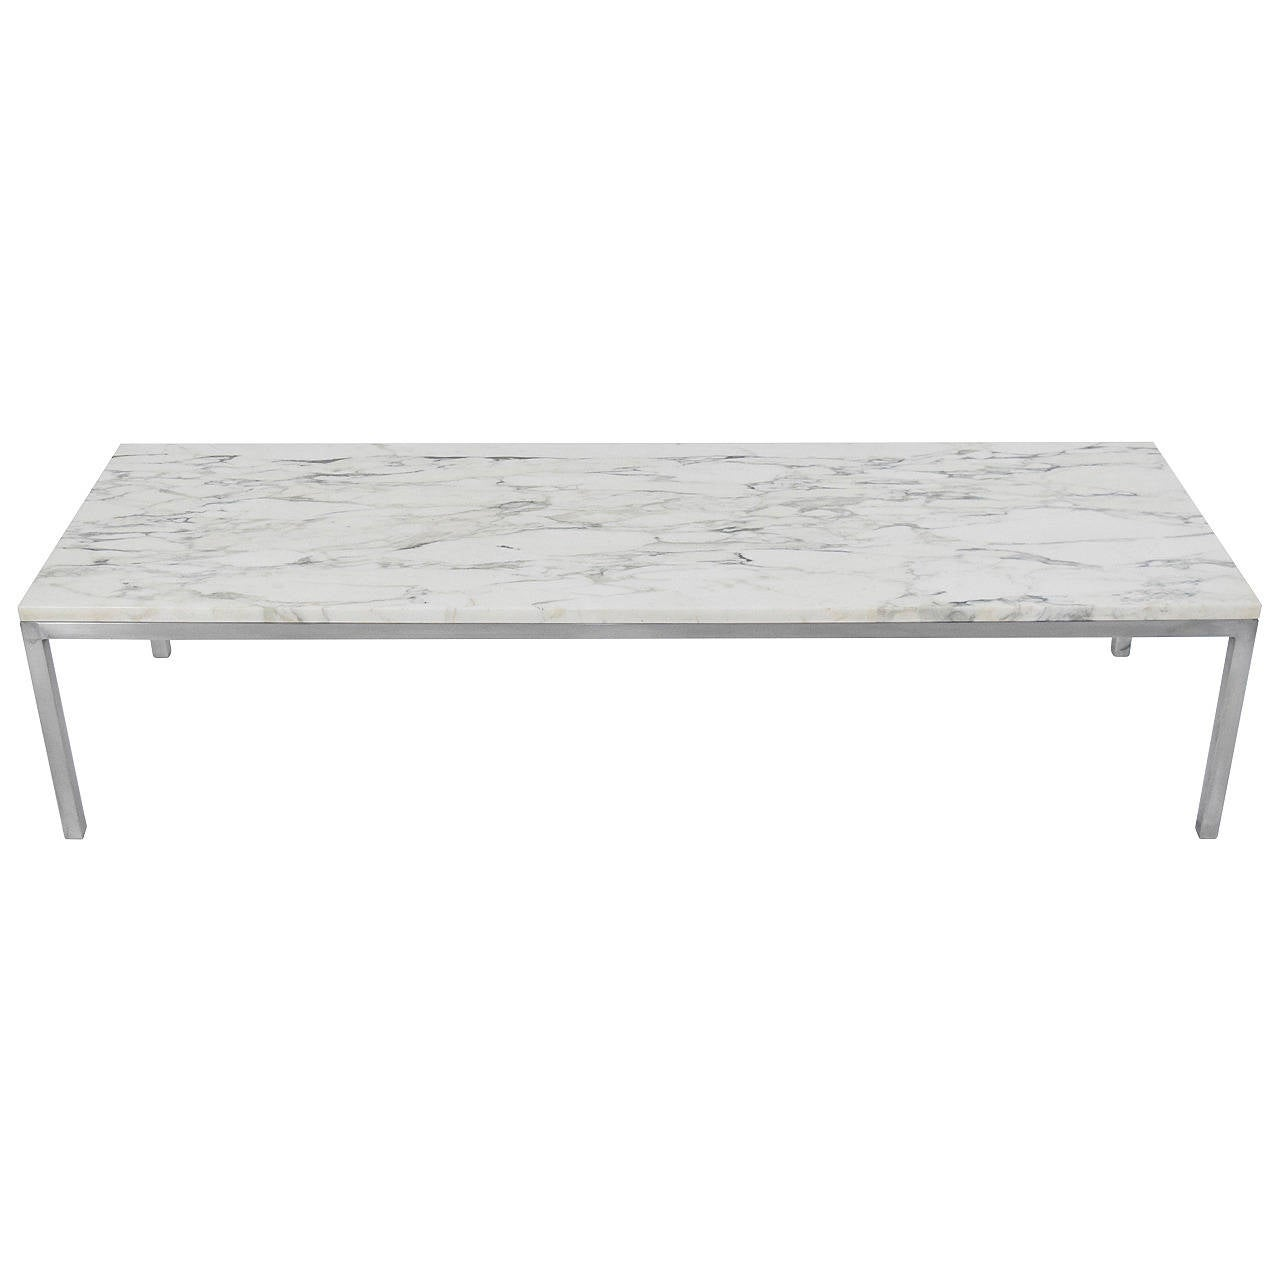 MarbleTop Florence Knoll Coffee Table at 1stdibs